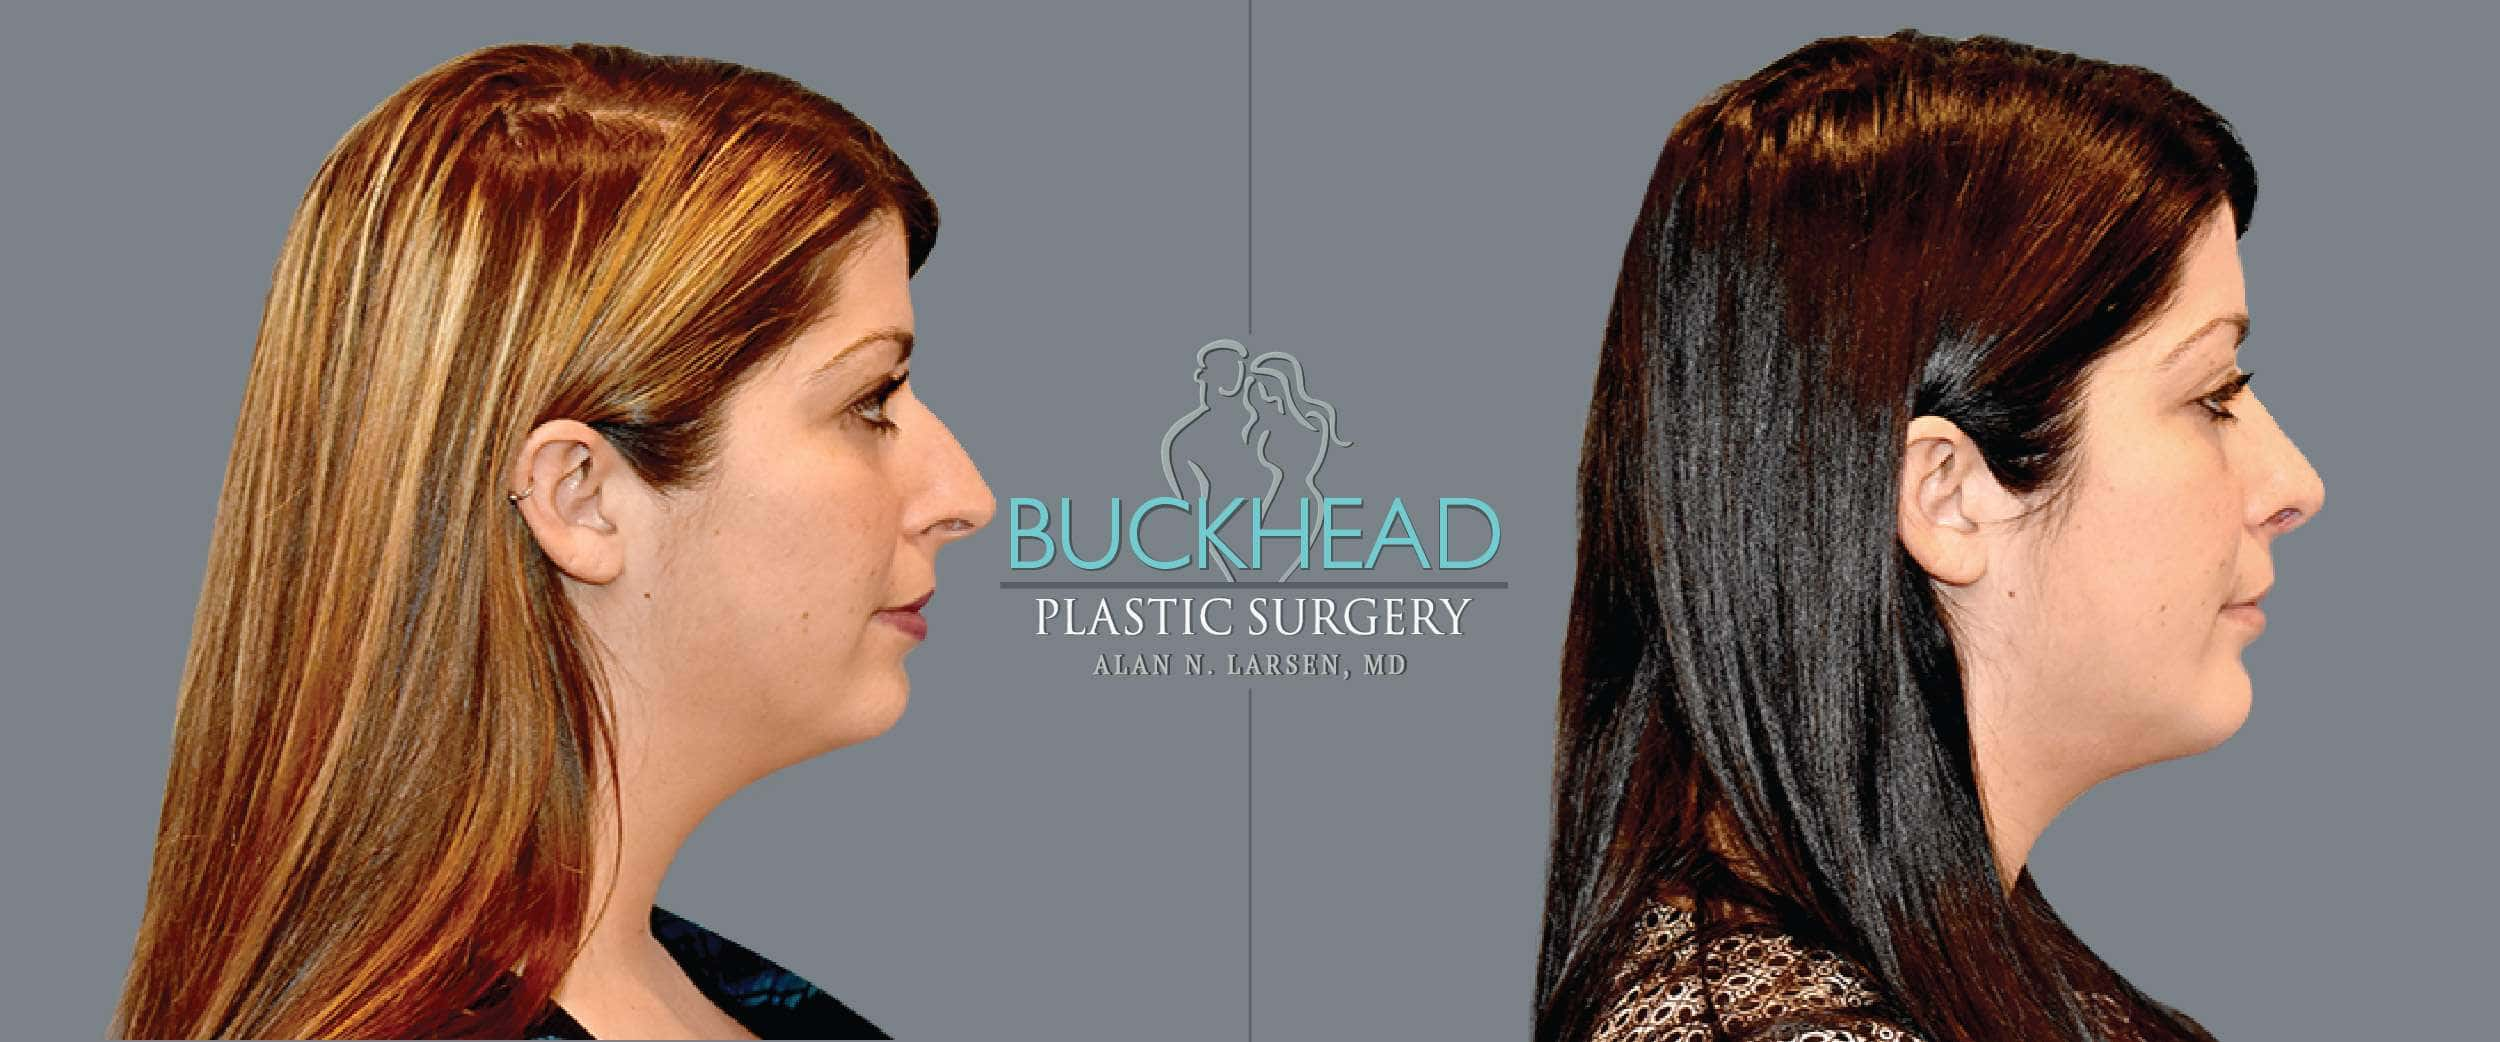 Before and After Photo gallery | Rhinoplasty | Buckhead Plastic Surgery | Board-Certified Plastic Surgeon in Atlanta GA